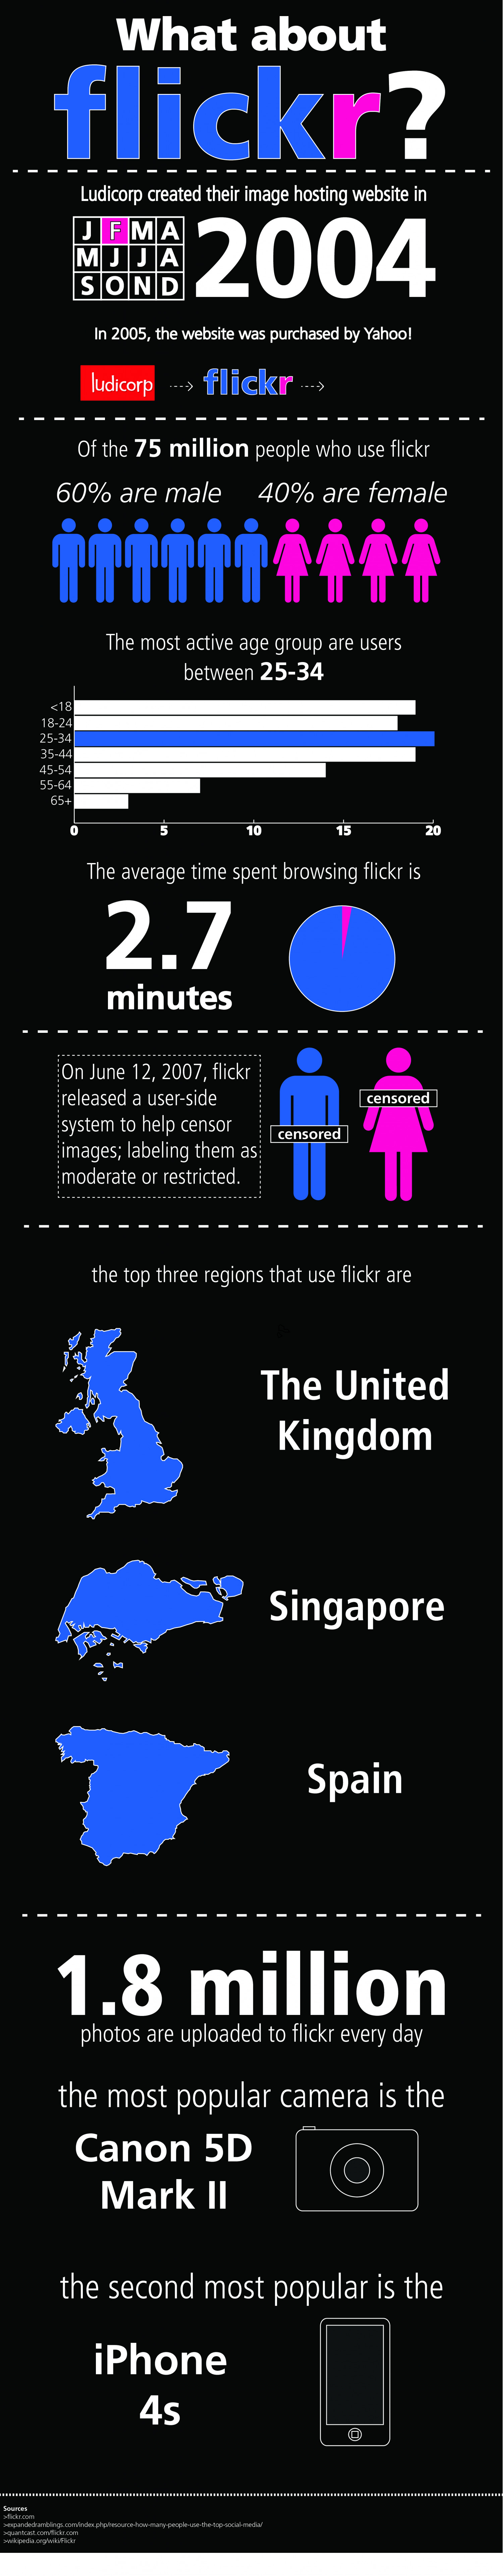 What about flickr? Infographic